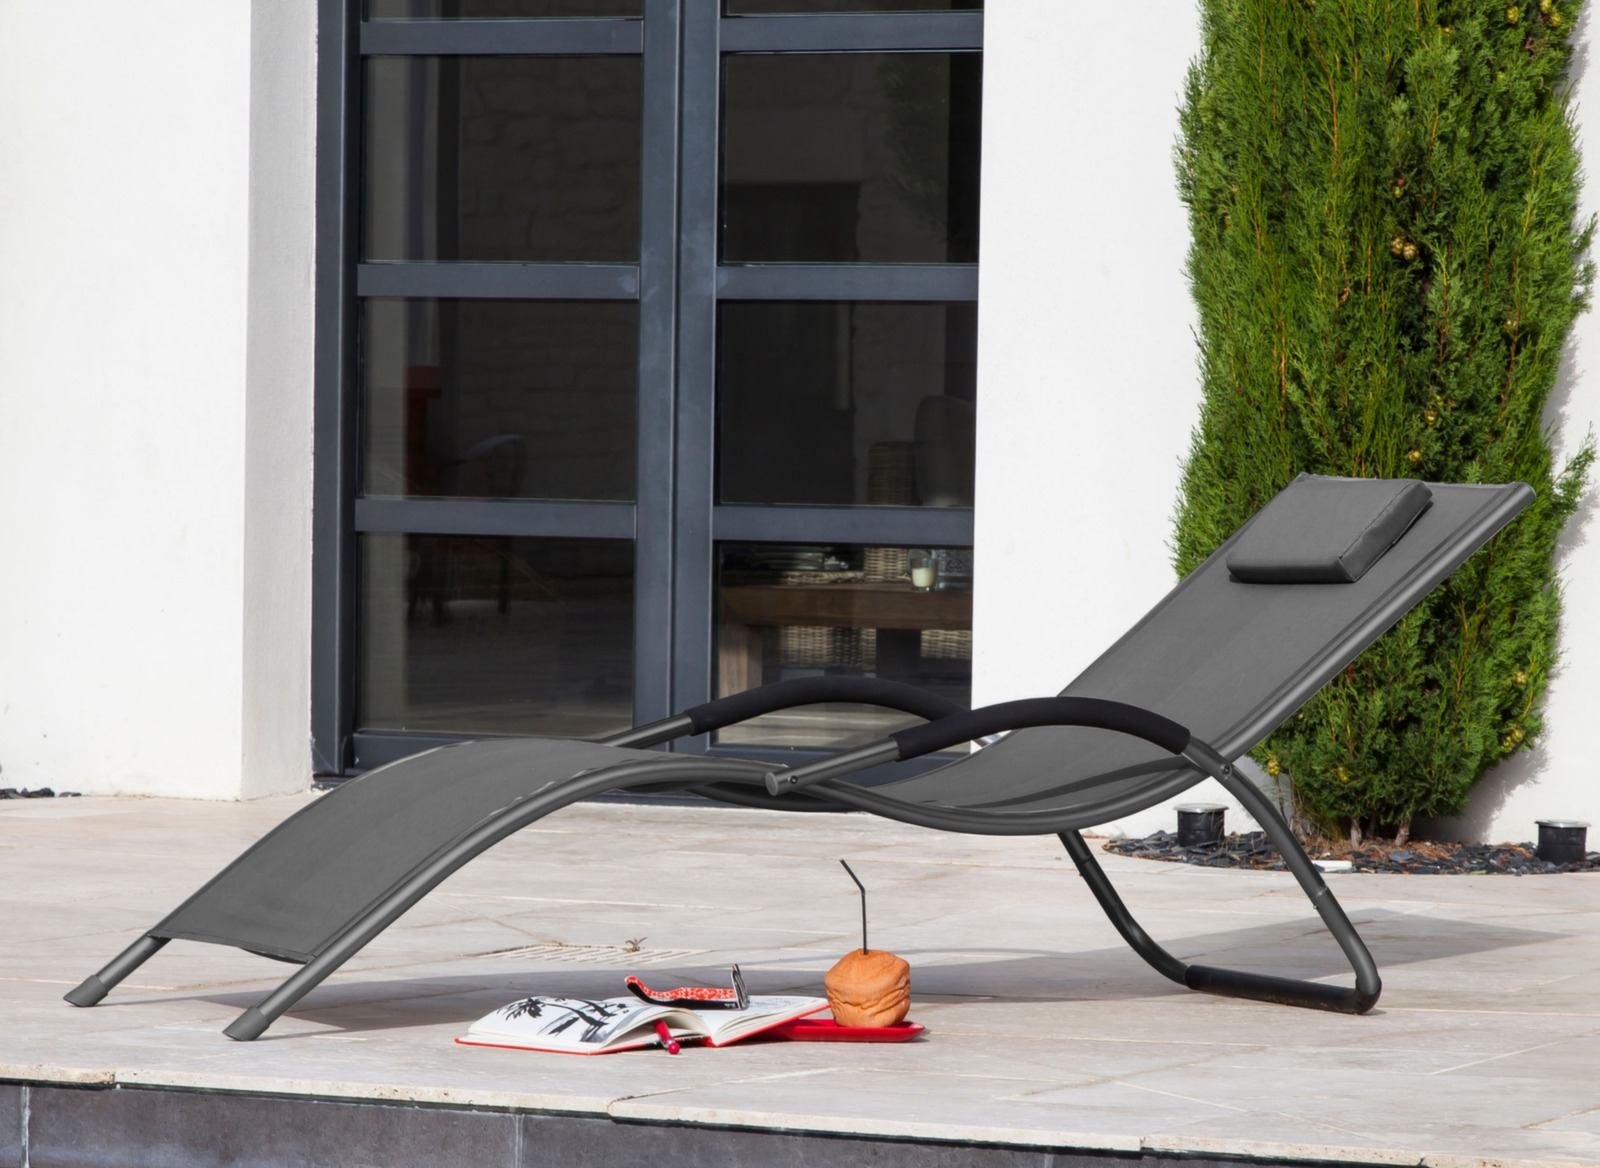 lit de soleil riva mobilier de jardin d tente proloisirs. Black Bedroom Furniture Sets. Home Design Ideas